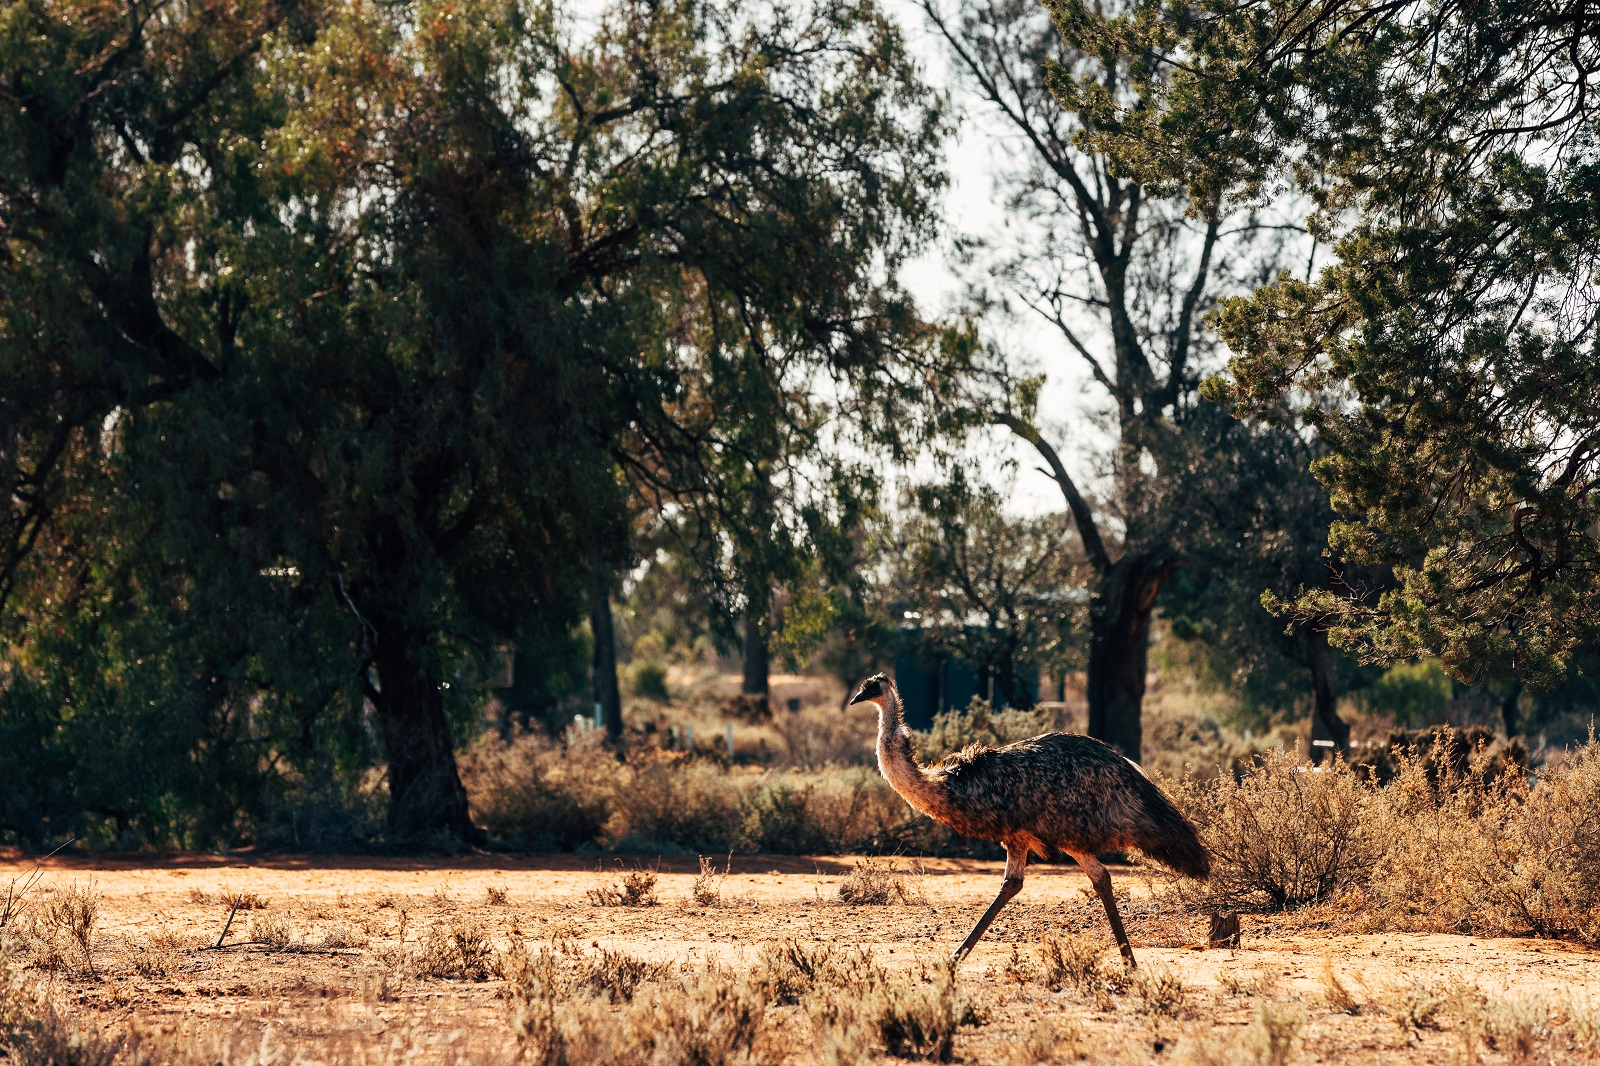 Emu in Mungo National Park